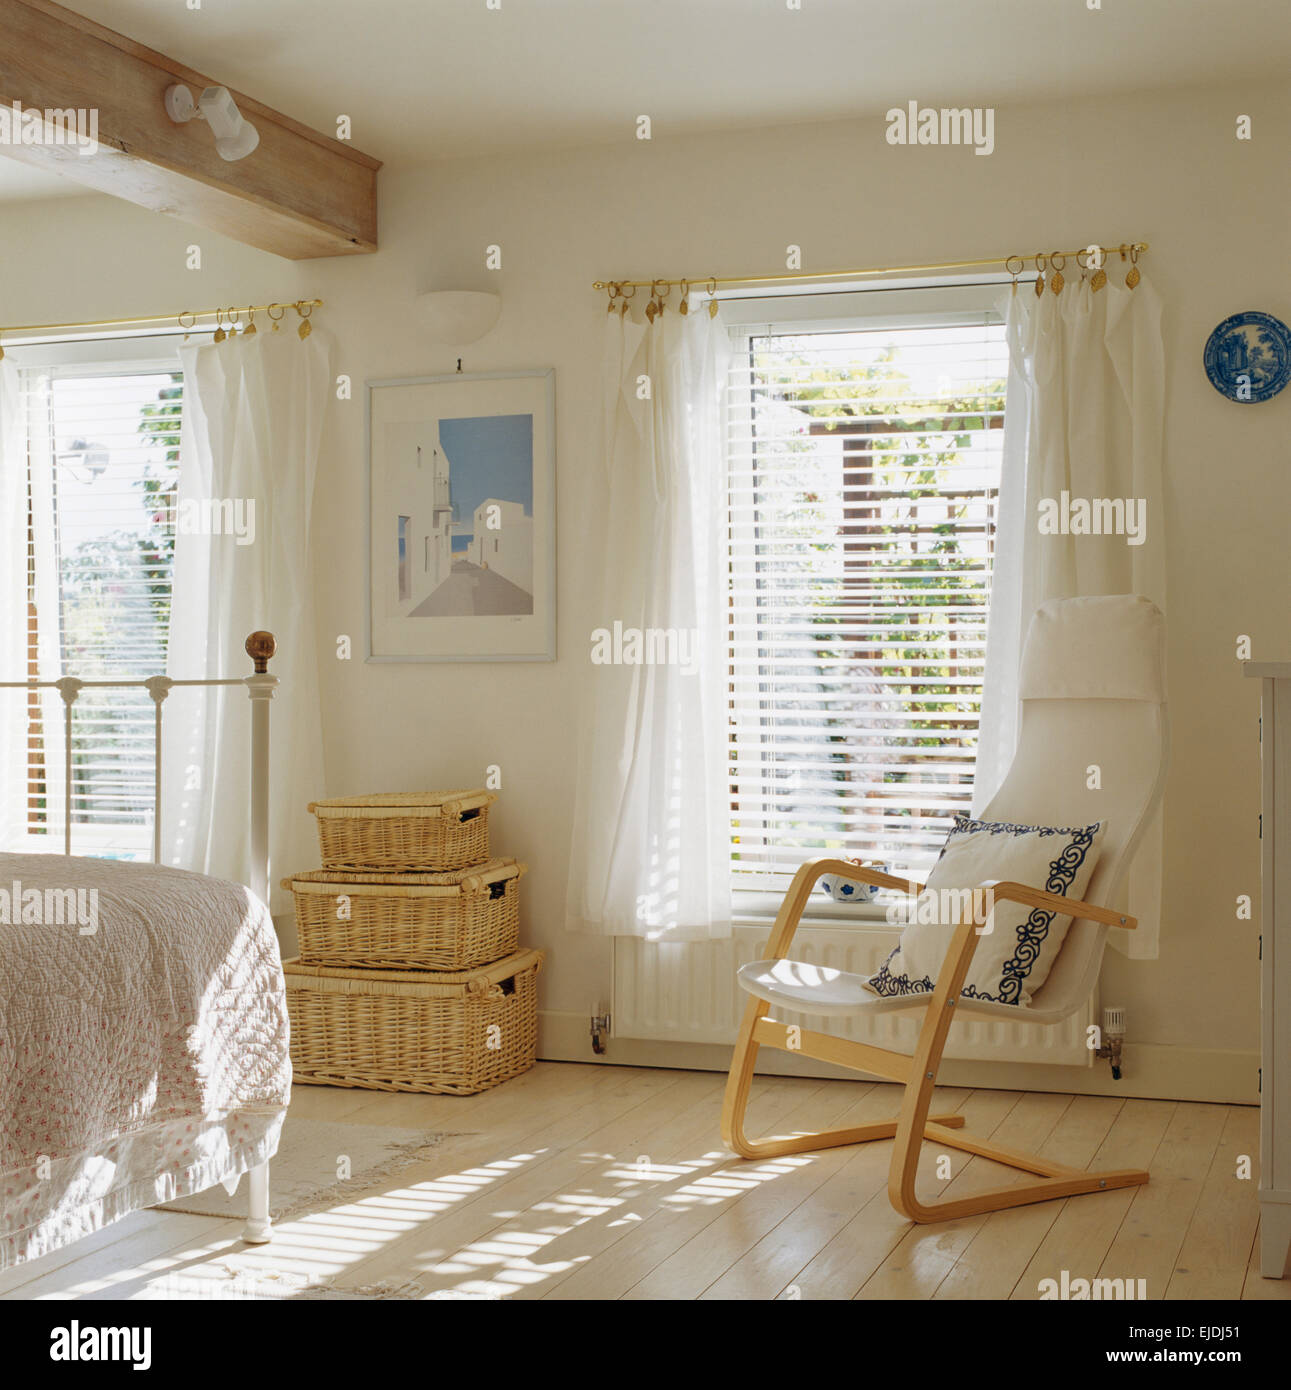 Scandinavian style wooden chair and wicker chests in white bedroom